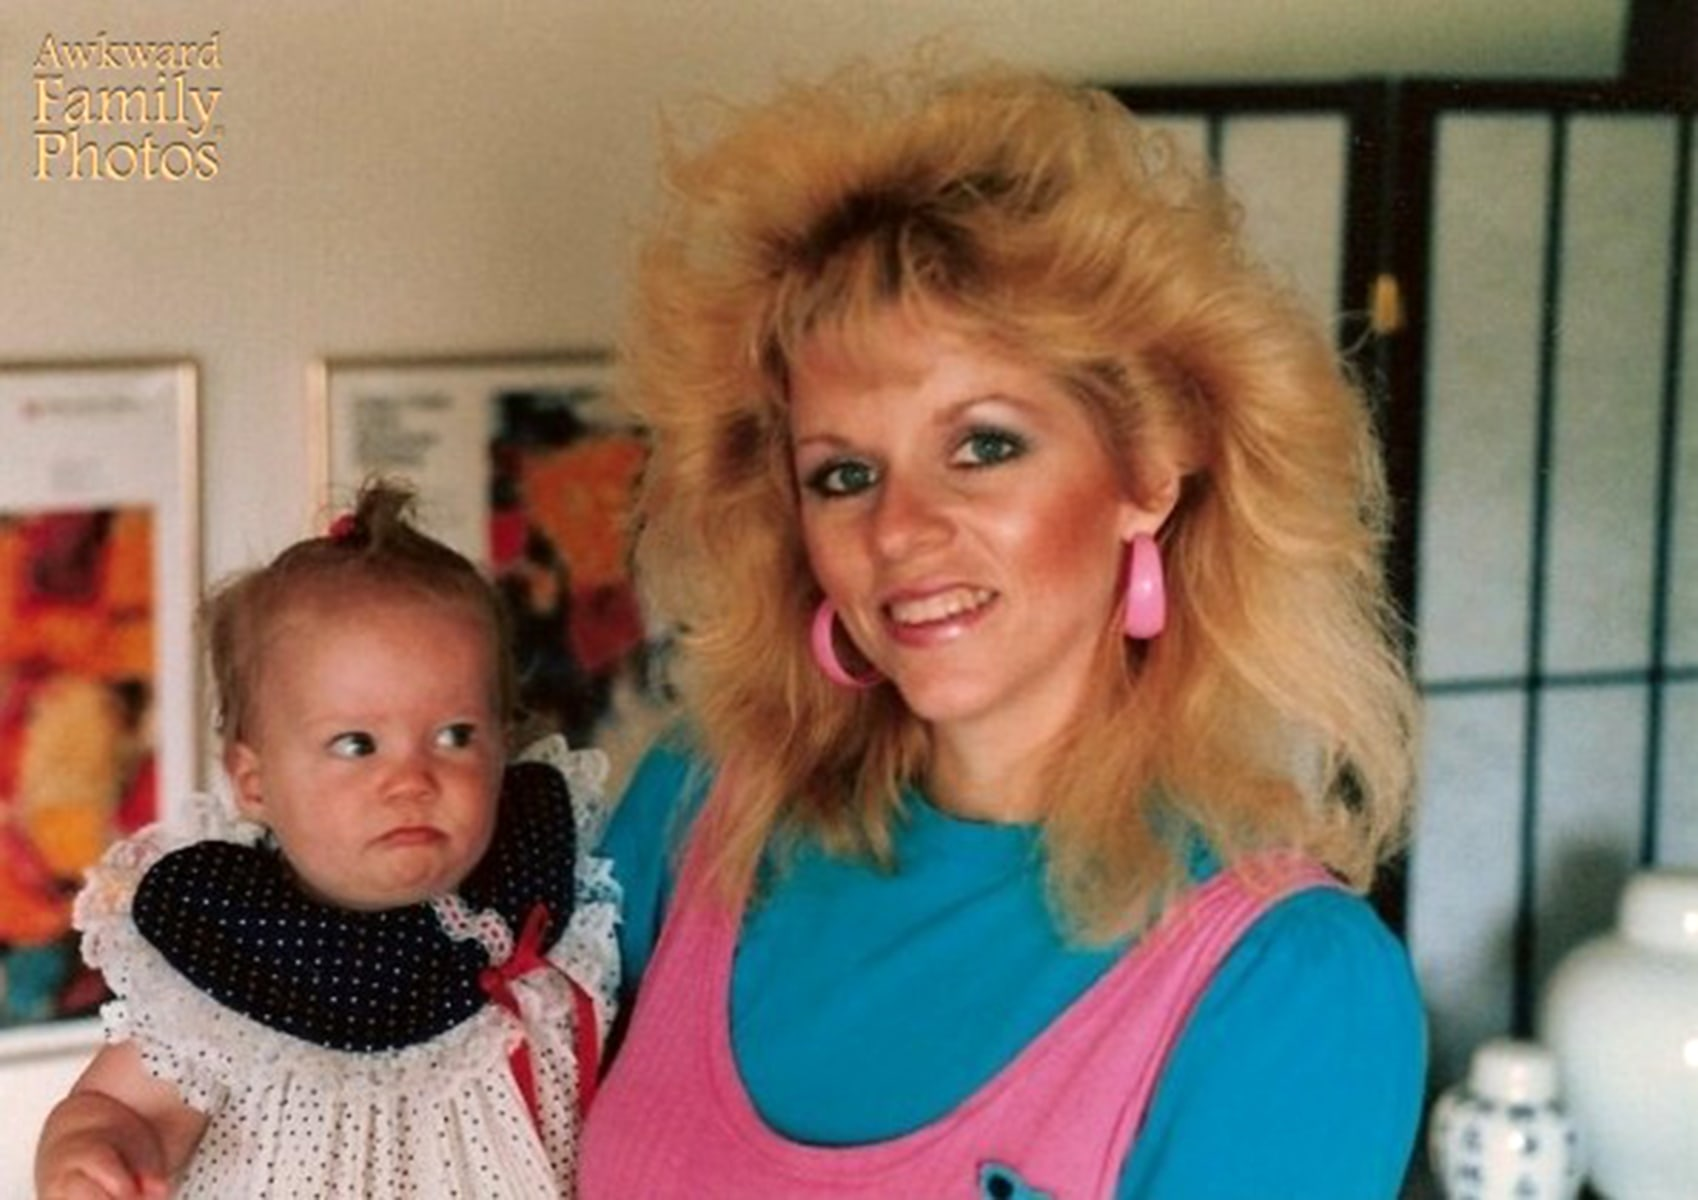 Awkward! Hilarious mom photos for Mothers Day - TODAY.com